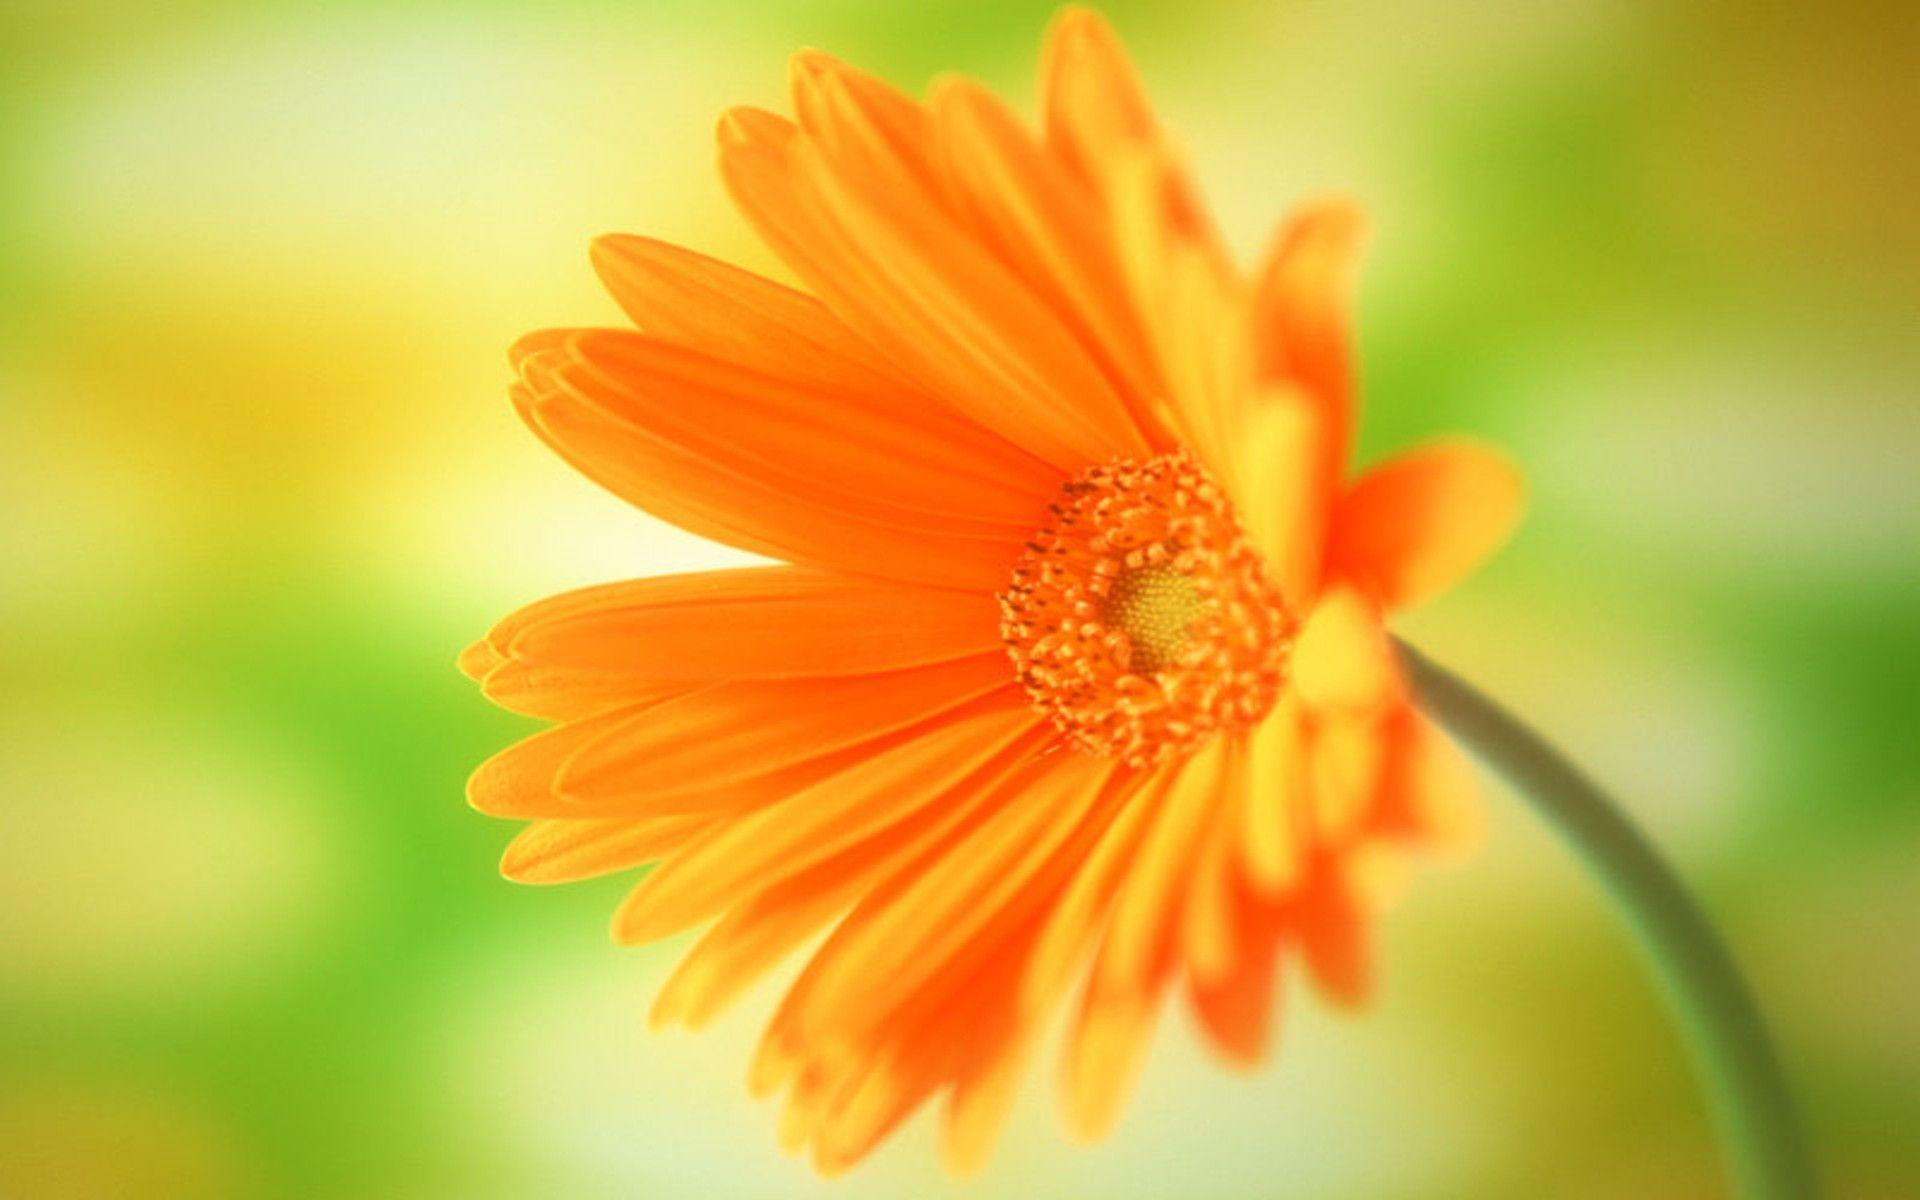 Single Flower Images & Pictures - Becuo